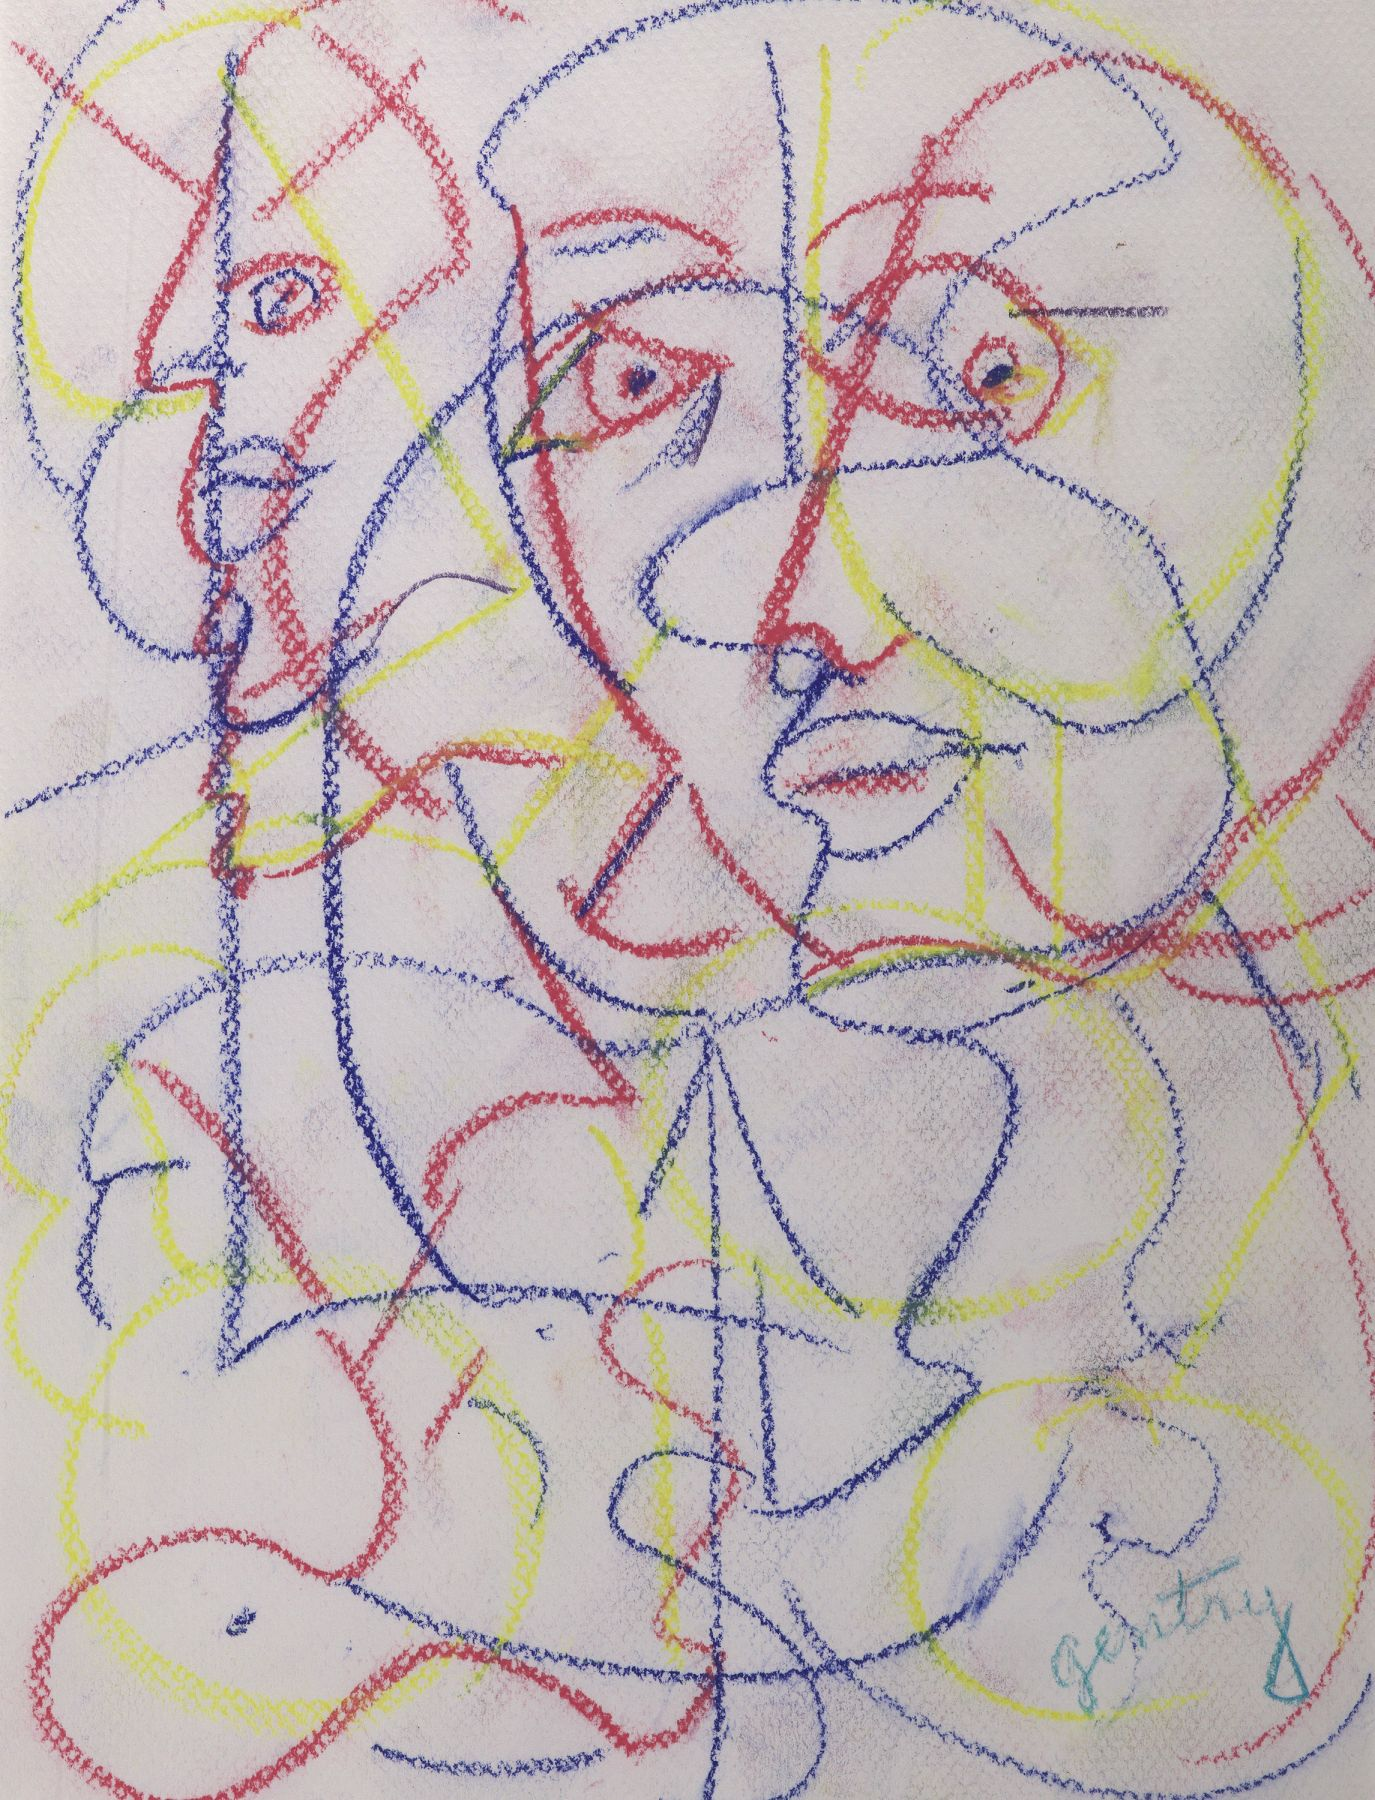 Dialogue Series A, 1993, Pastel on paper